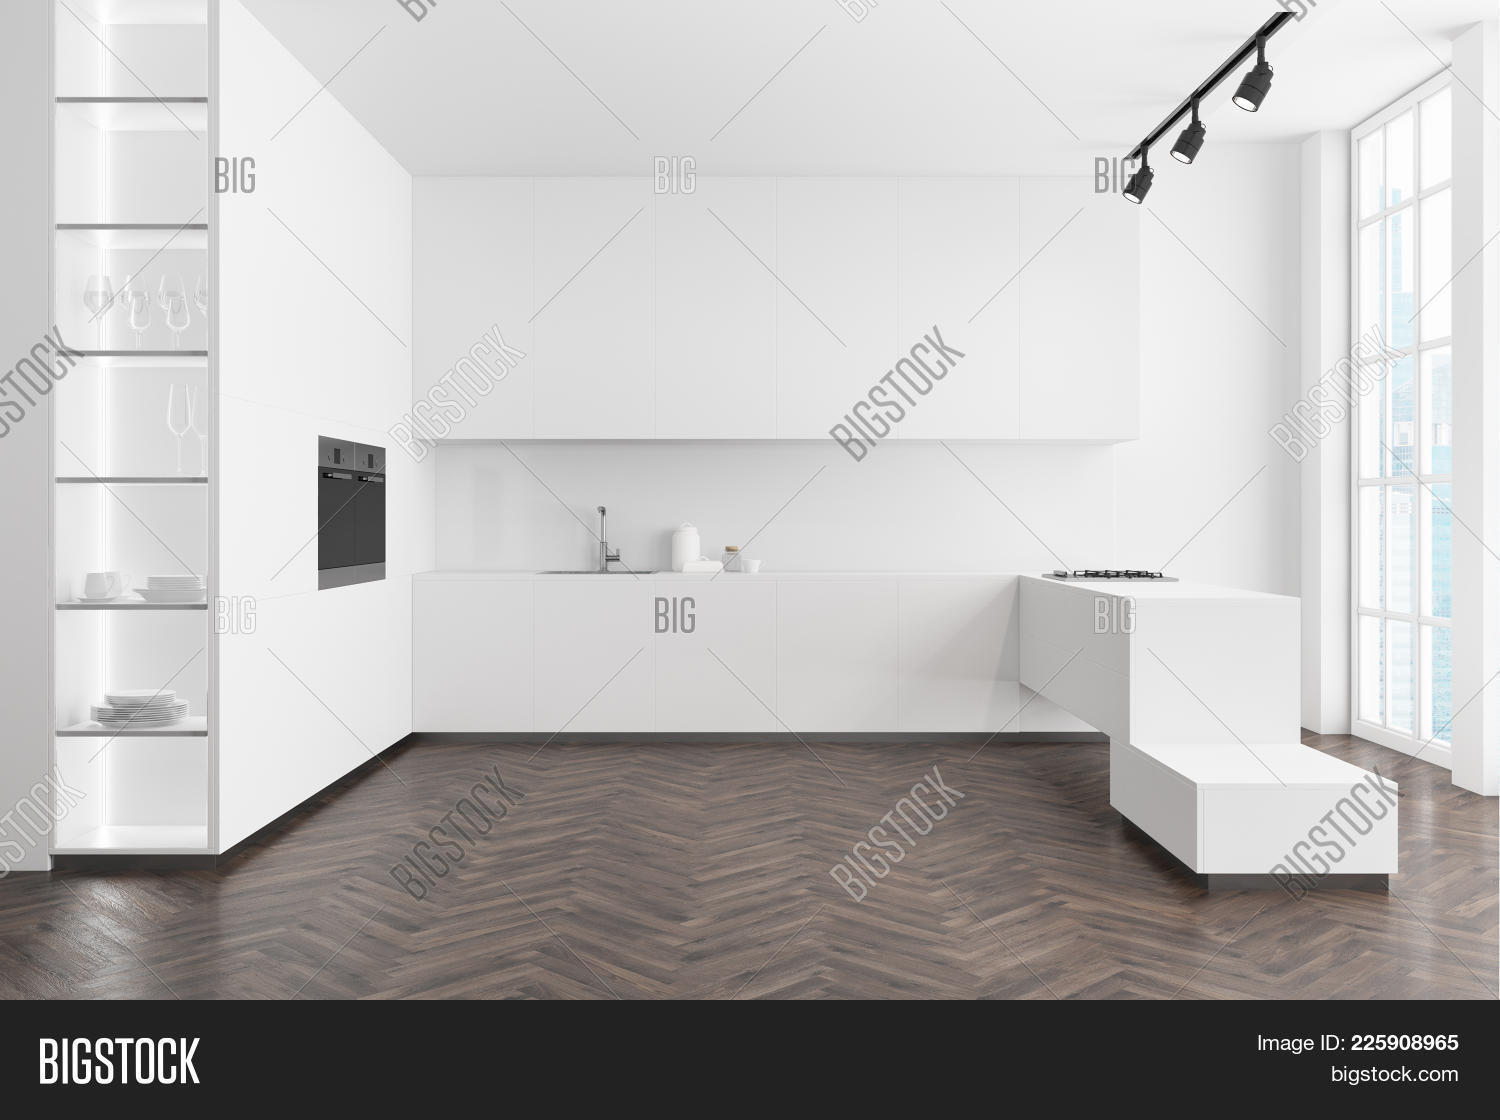 Counter interior white kitchen powerpoint template counter architecture powerpoint template 60 slides toneelgroepblik Choice Image